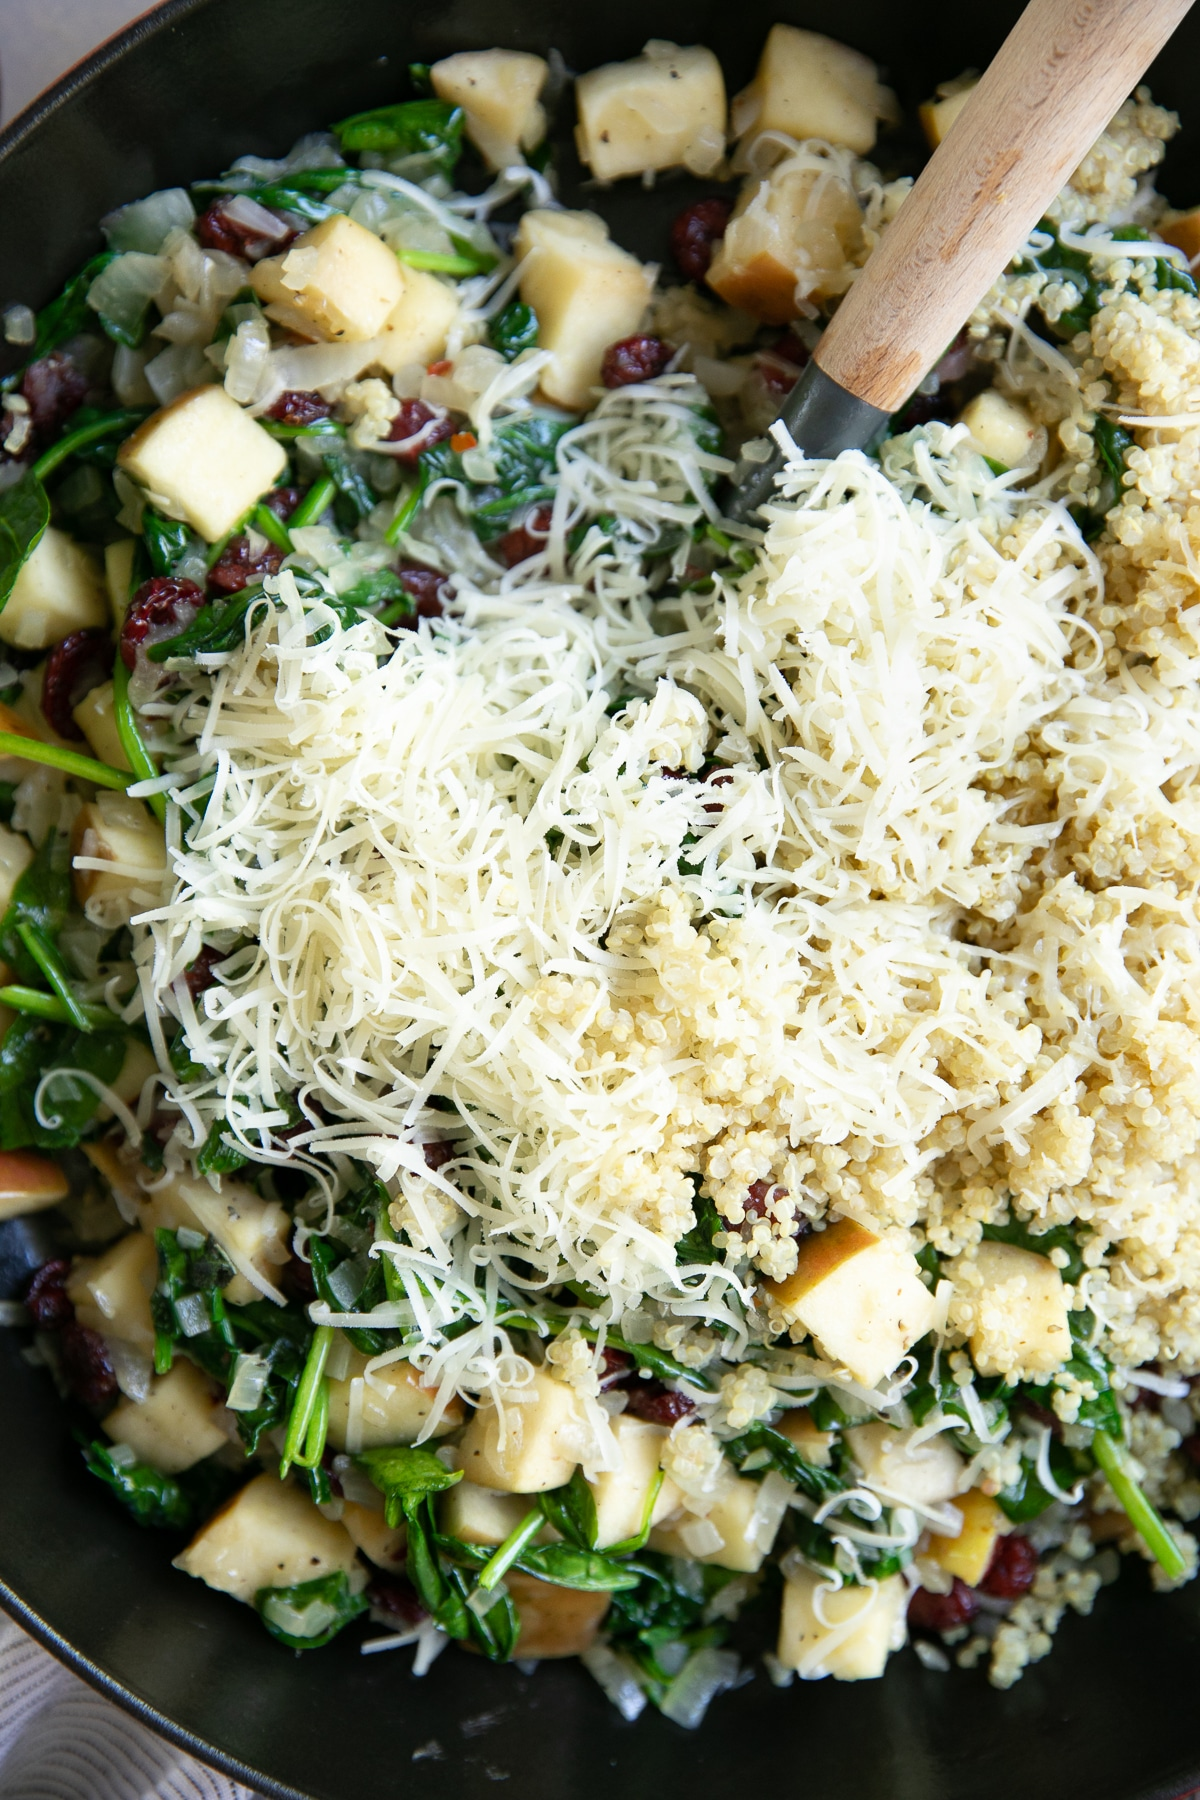 Skillet filled with cooked onions, apples, fresh sage, dried cranberries, spinach, and topped with cooked quinoa and shredded parmesan.